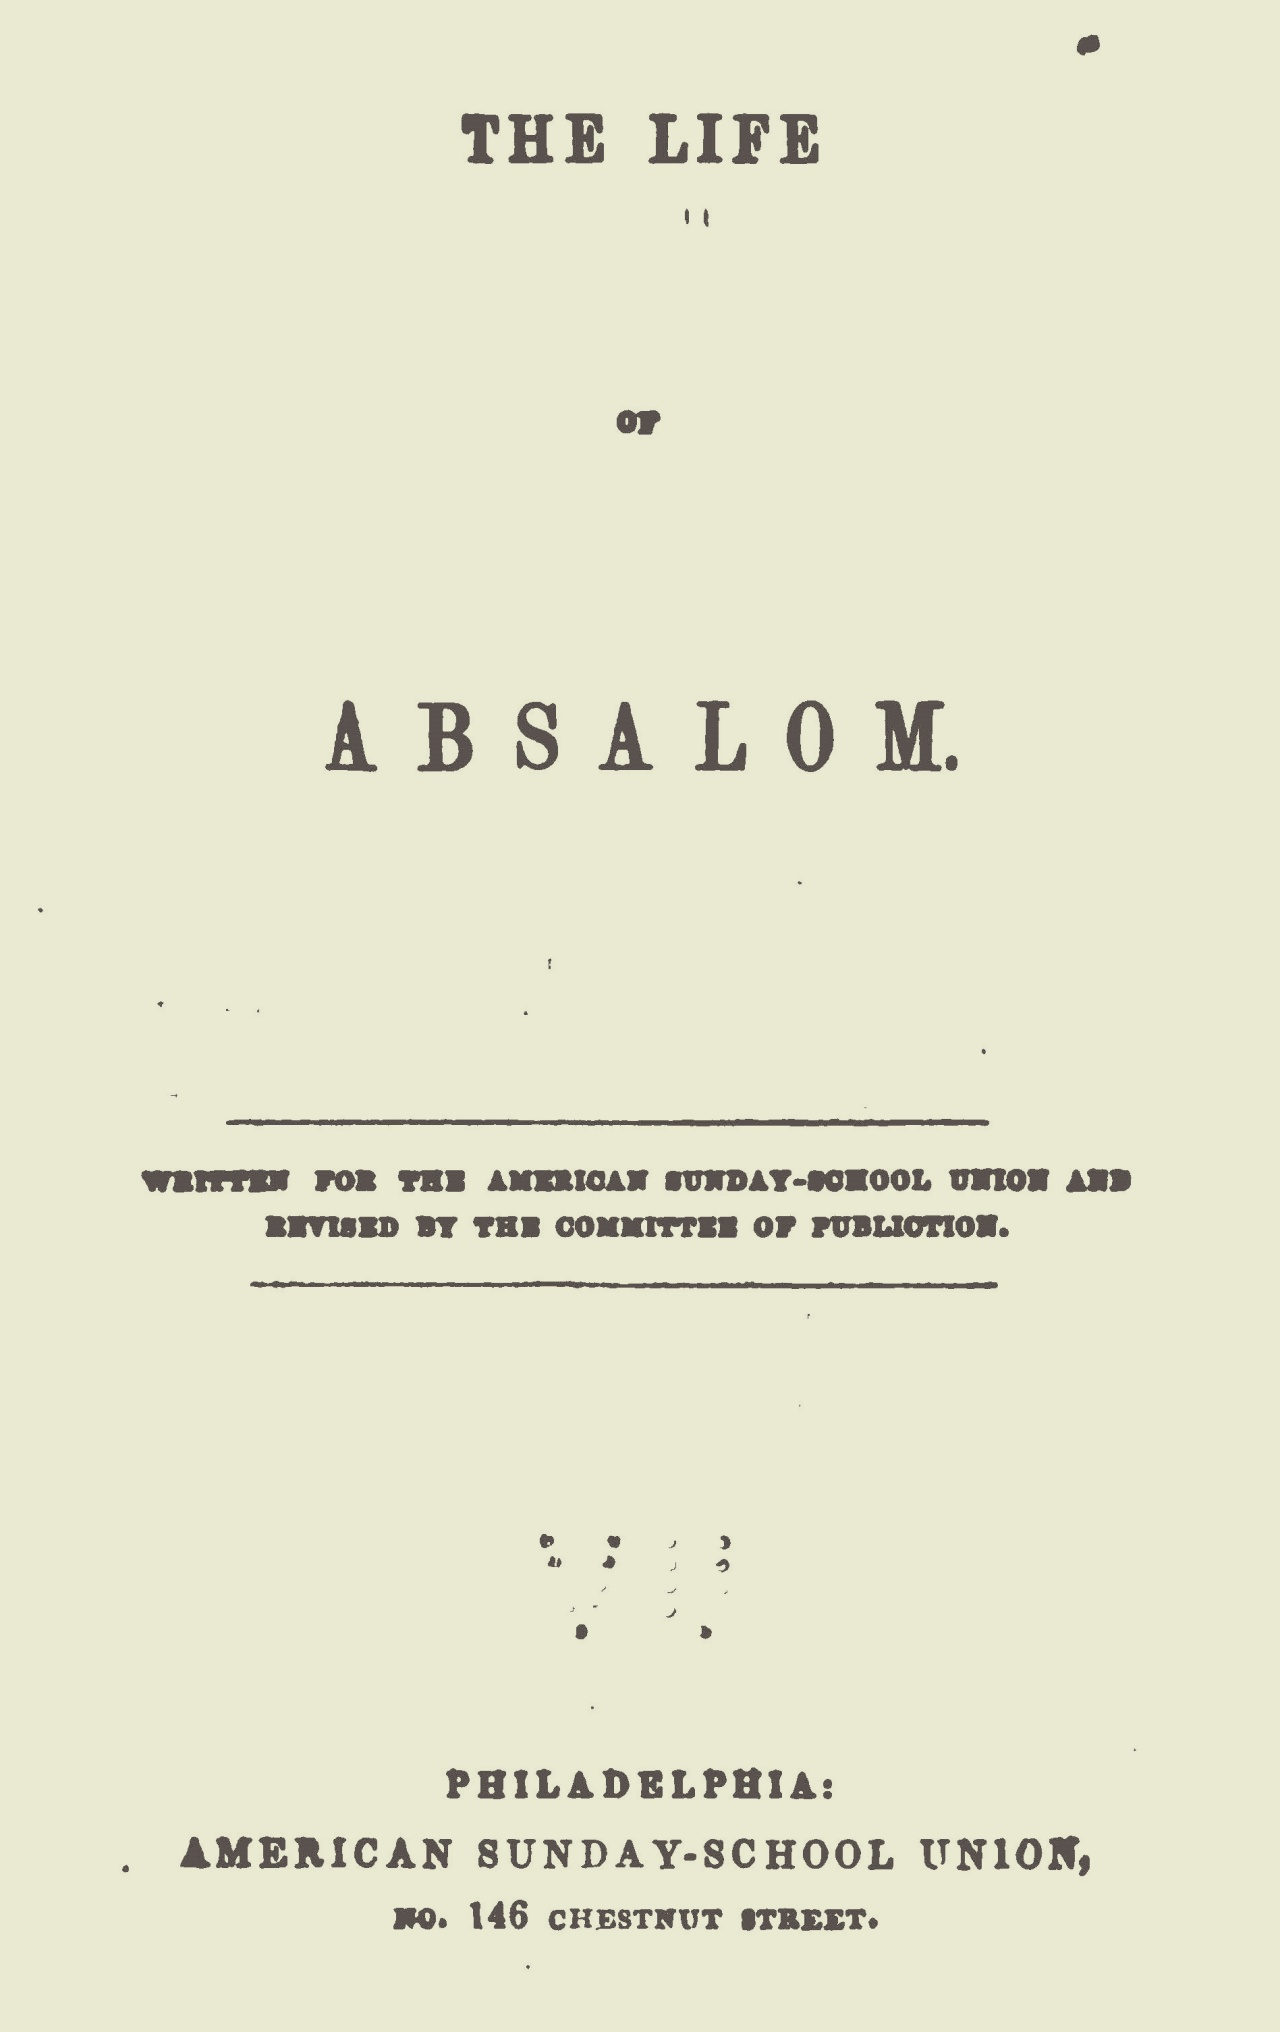 Alexander, James Waddel, The Life of Absalom Title Page.jpg